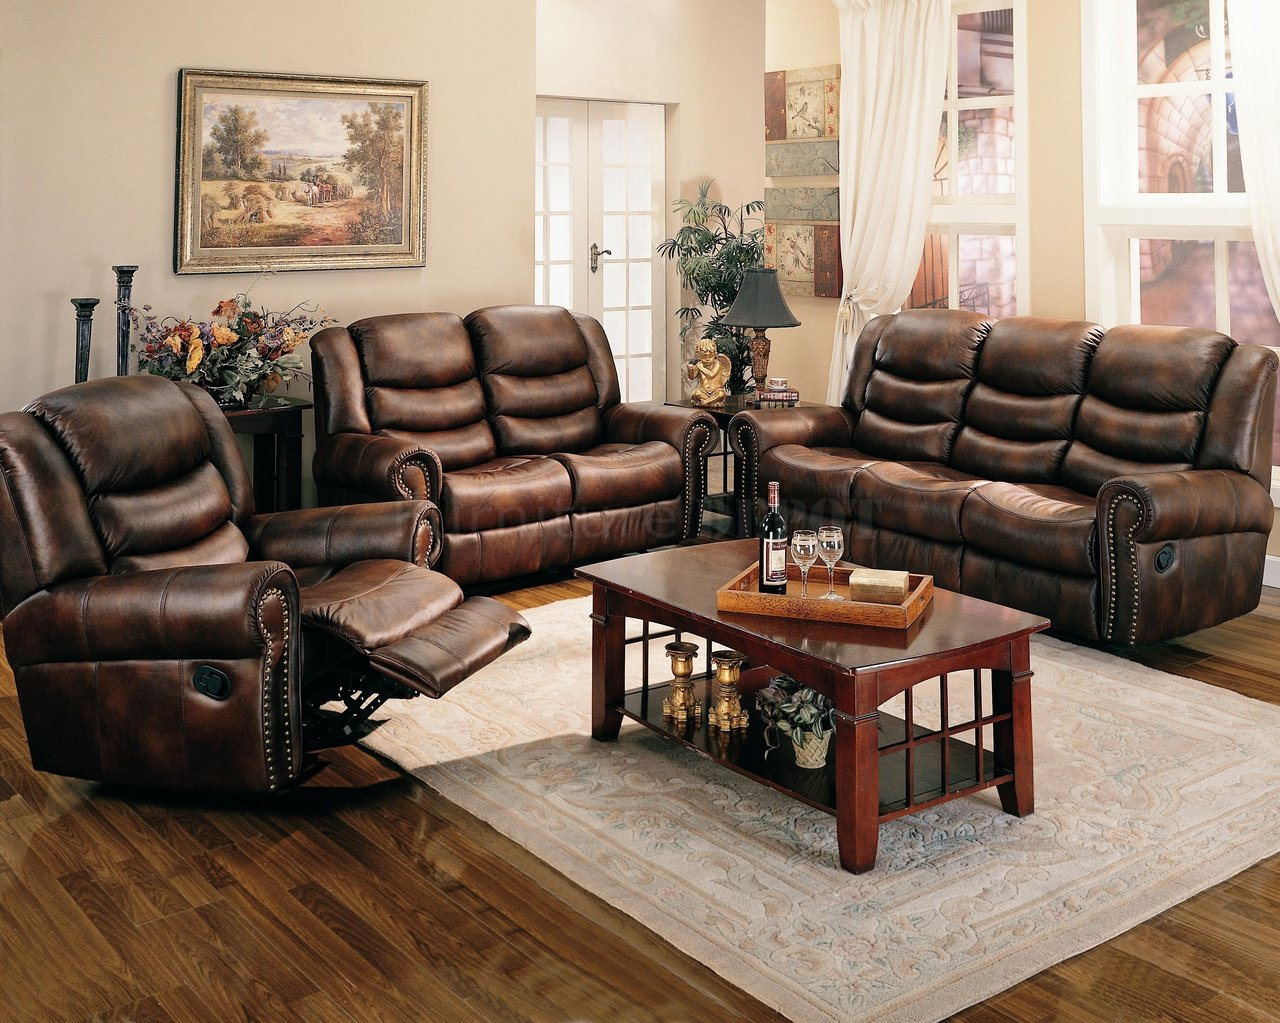 Stunning leather living room furniture - 2 drqdglu